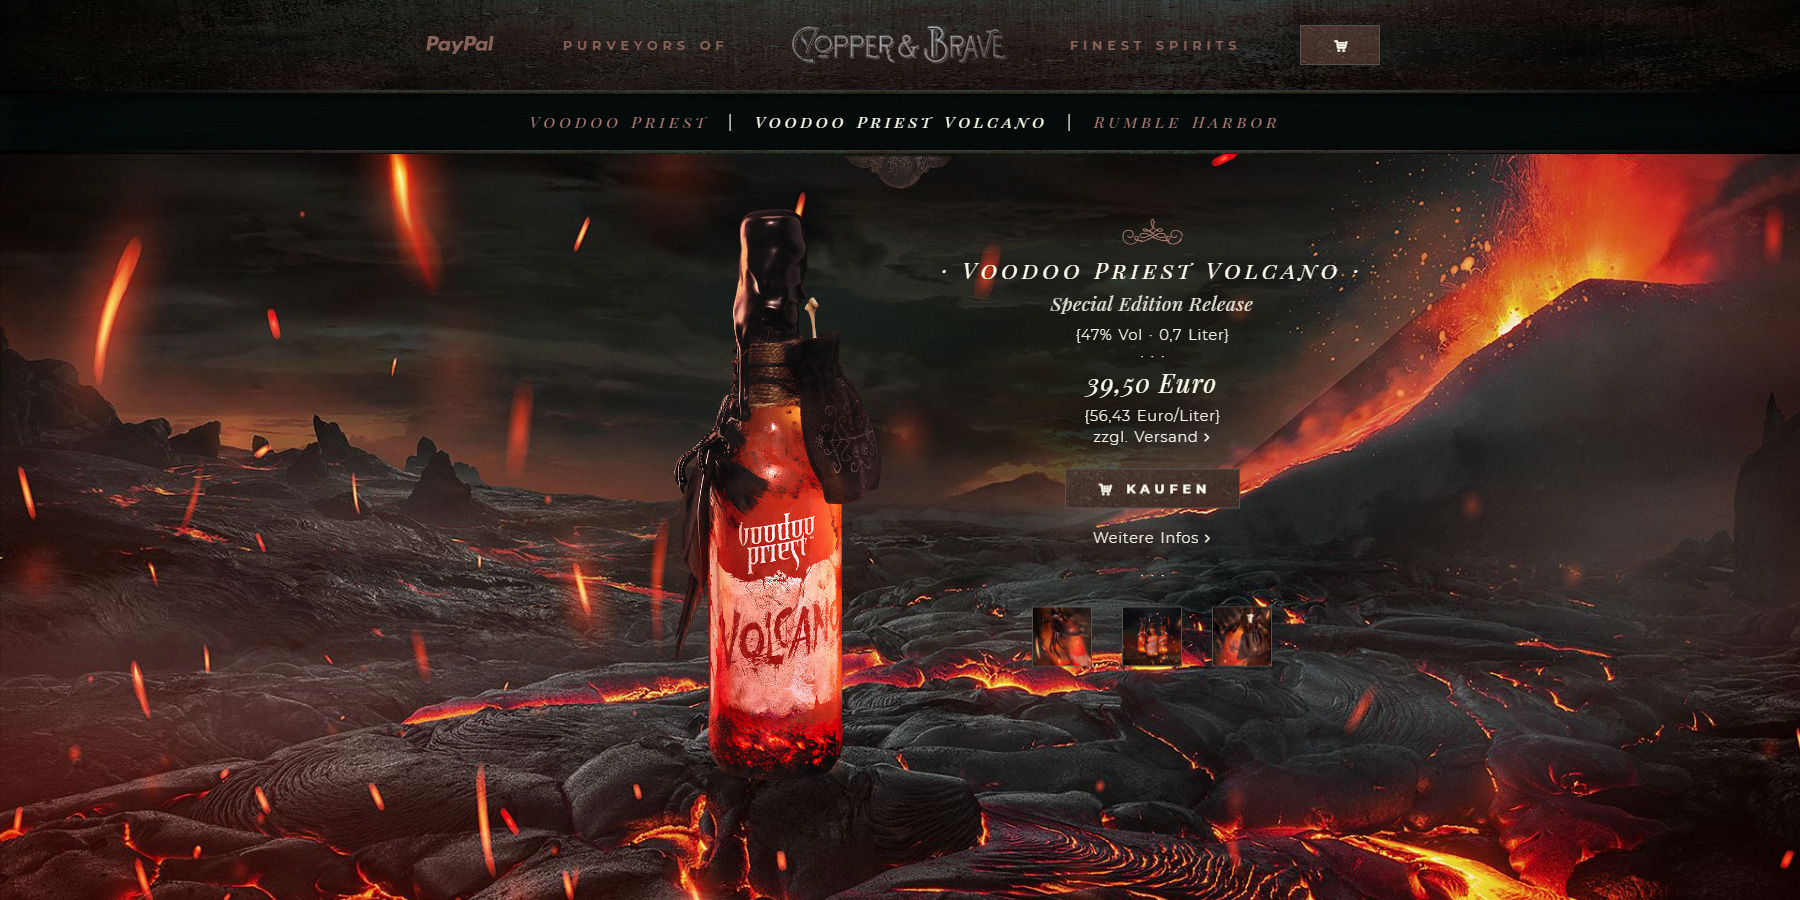 Copper & Brave™ - Website of the Day